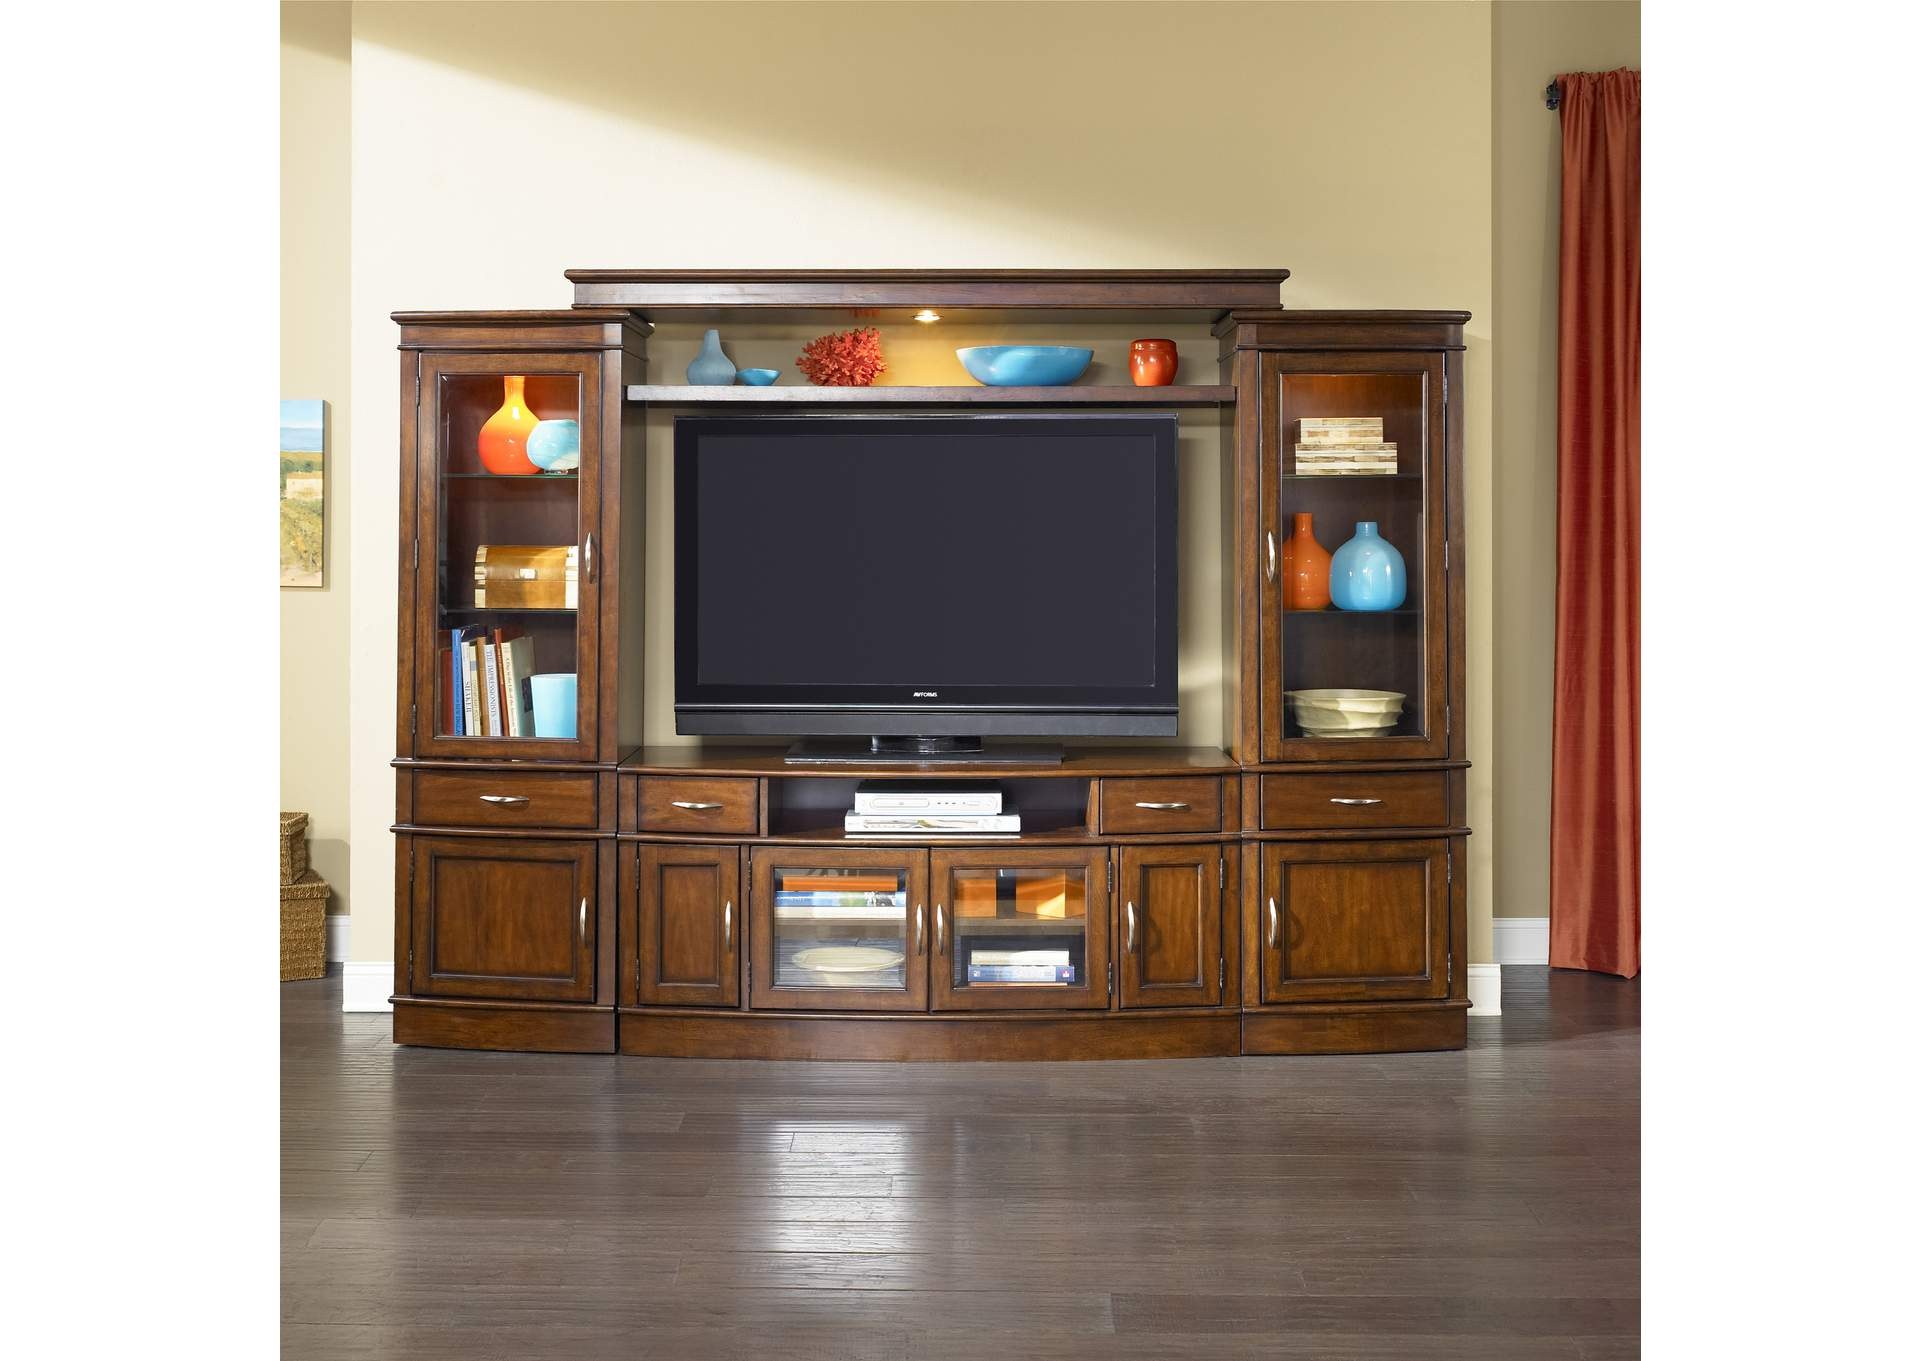 Hanover Cherry Spice Entertainment Center with Piers,Liberty